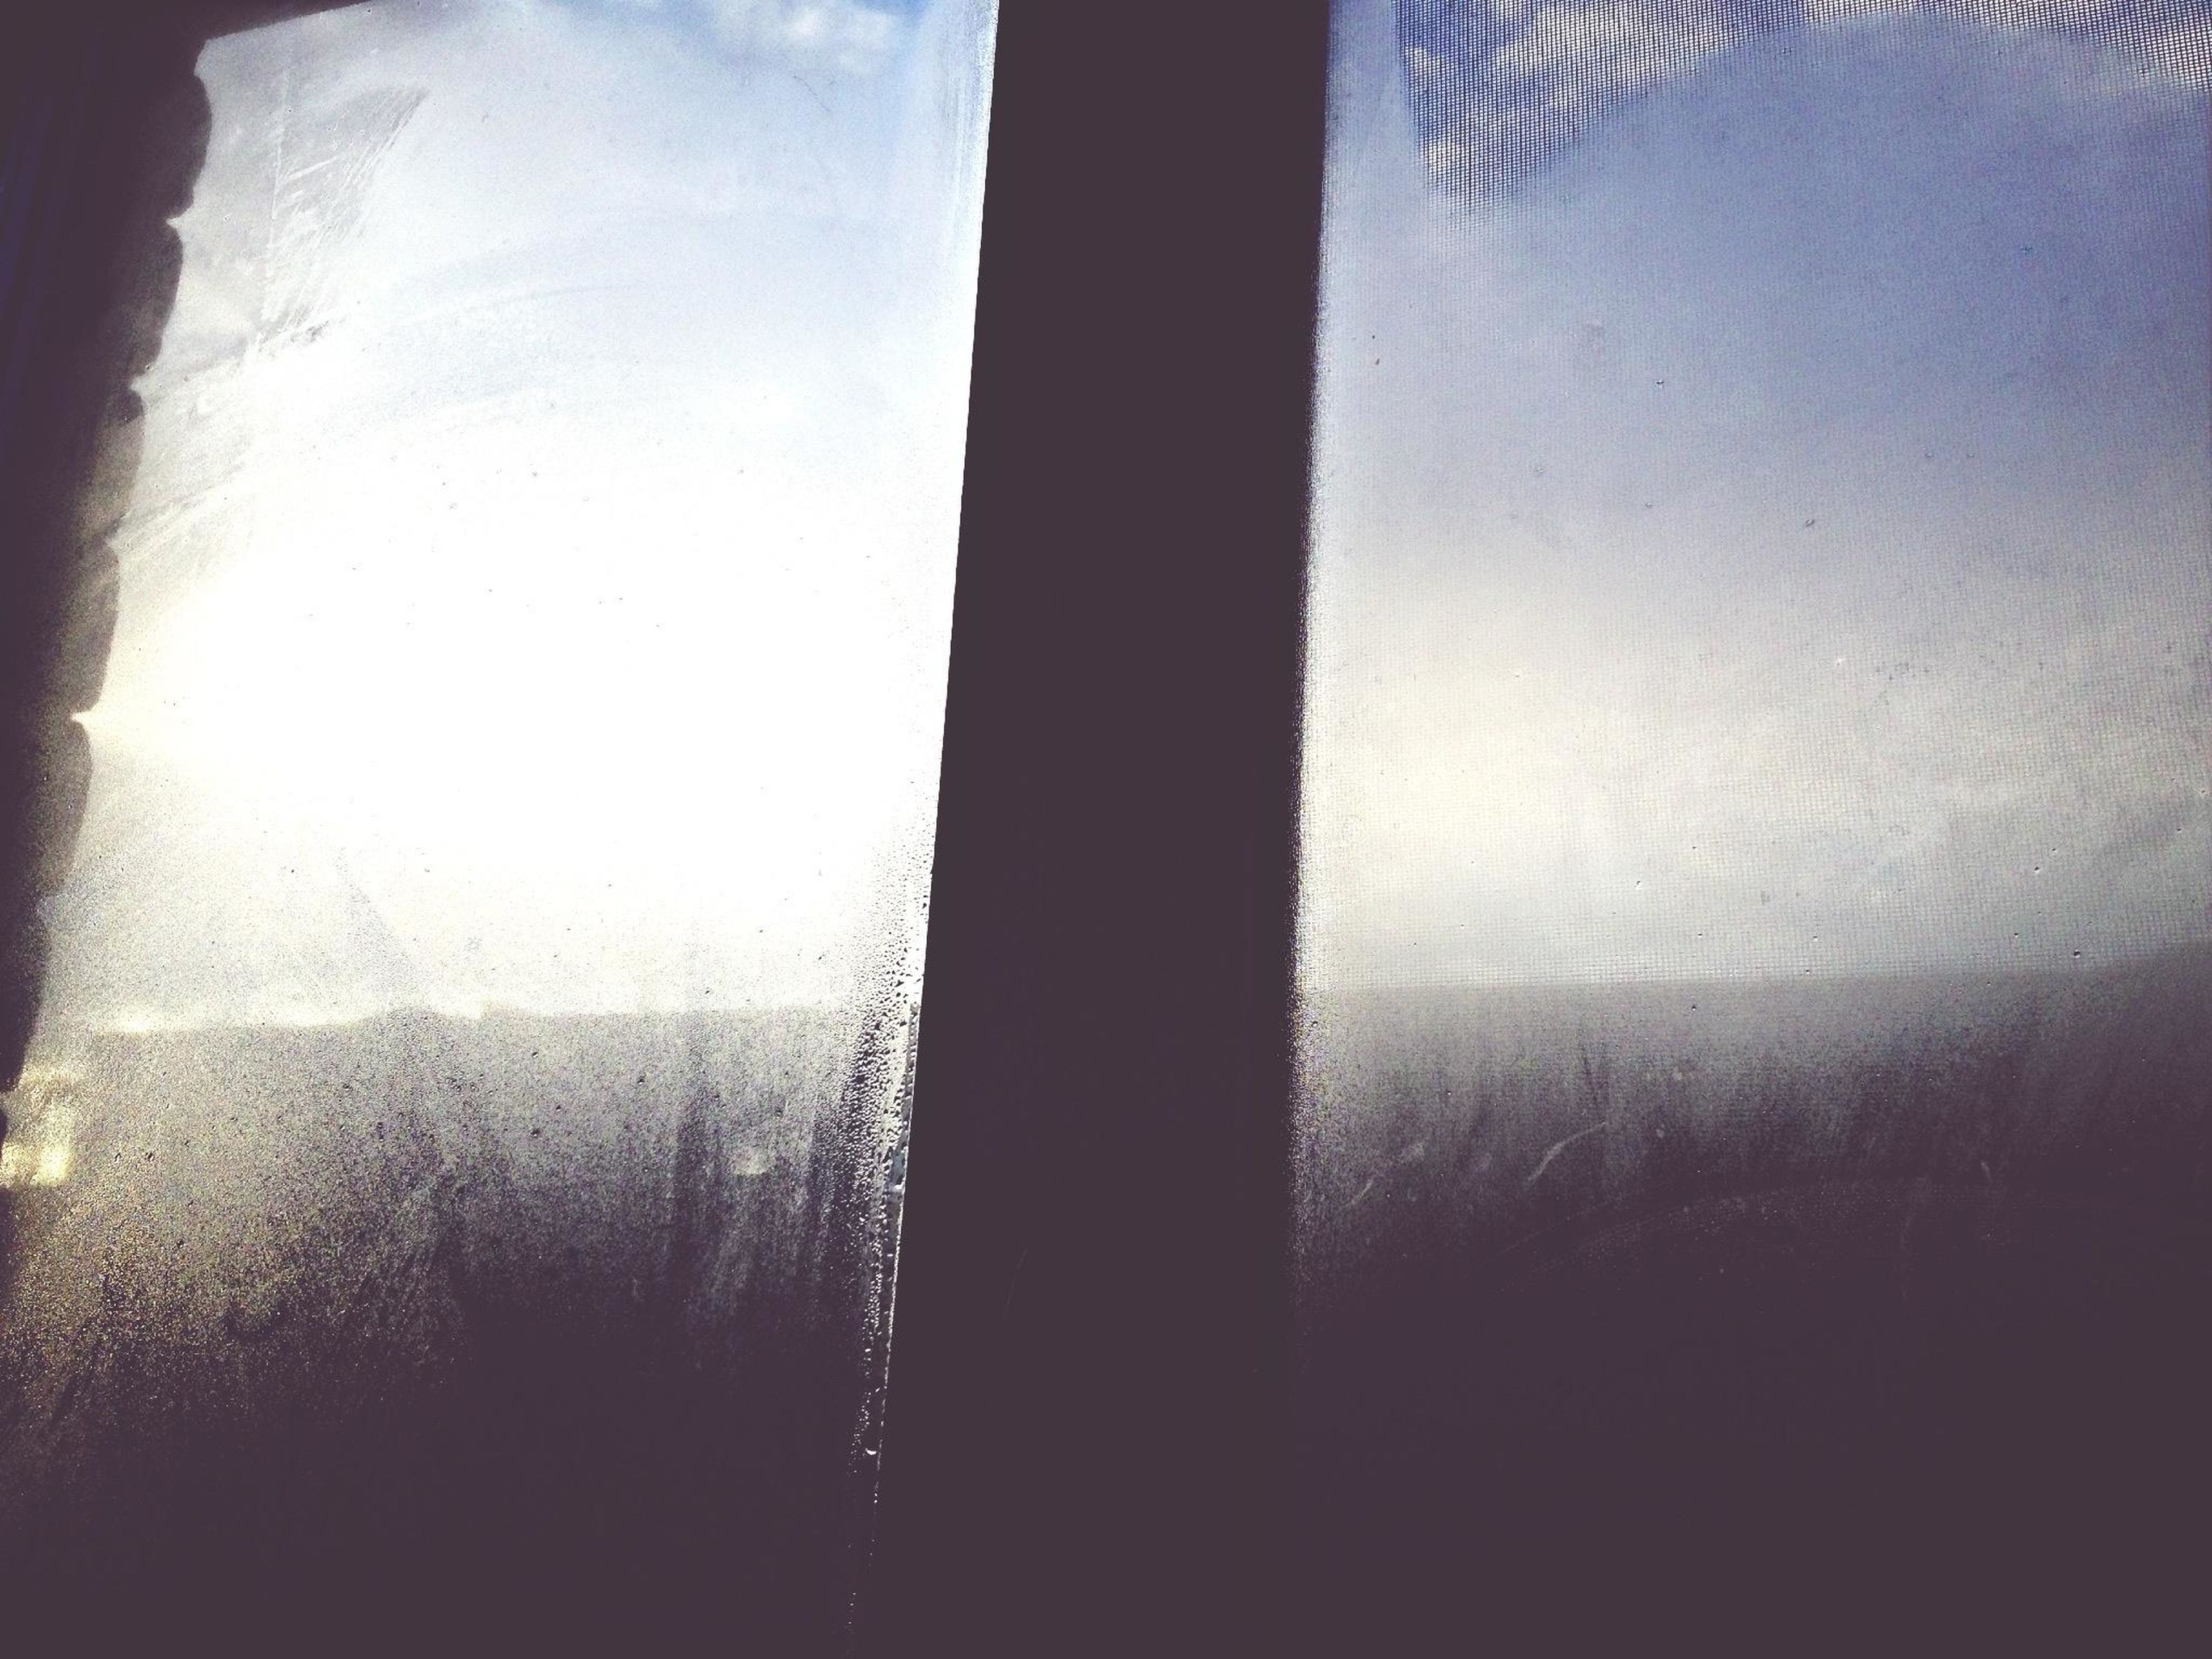 indoors, window, silhouette, glass - material, transparent, sunlight, dark, auto post production filter, sky, transfer print, shadow, no people, reflection, day, curtain, close-up, looking through window, built structure, nature, dusk